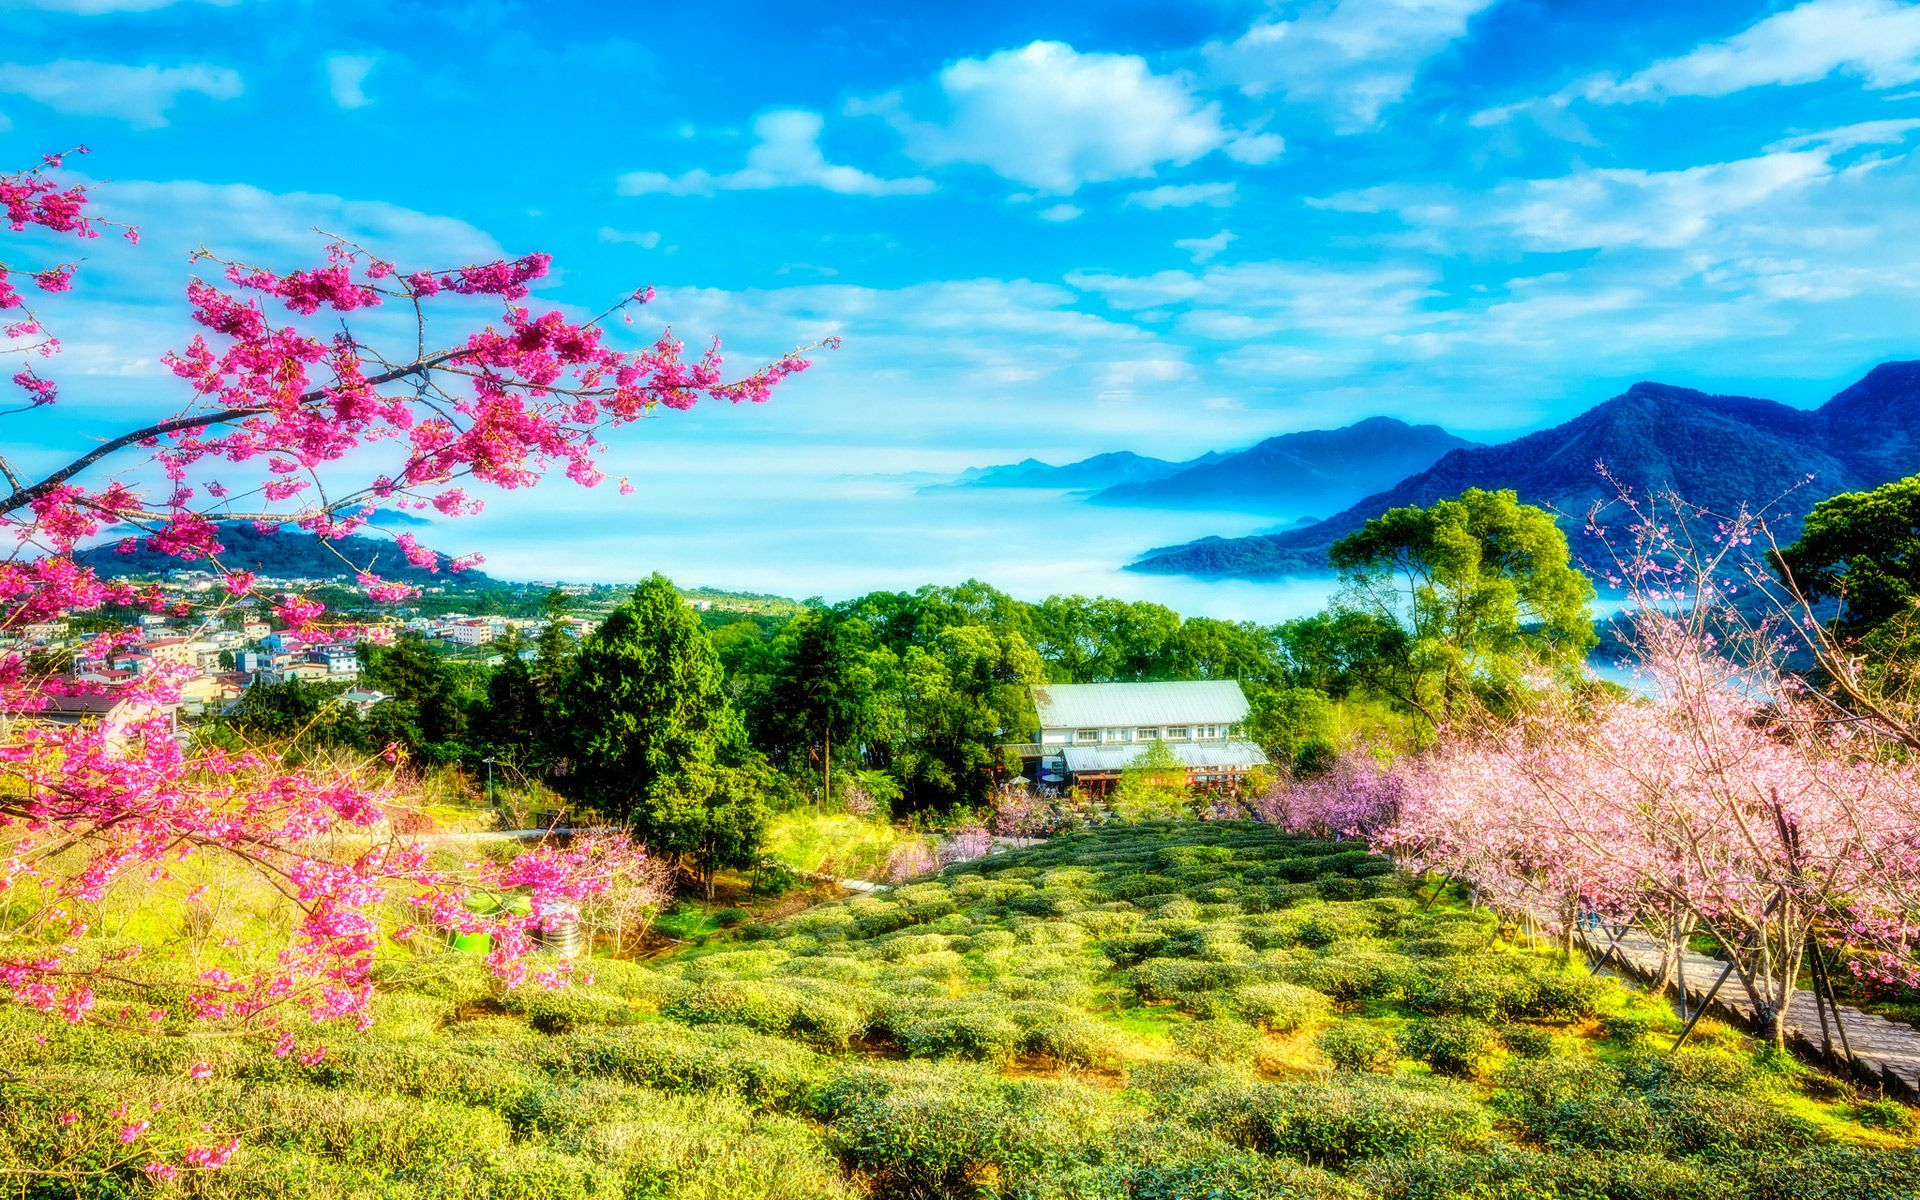 China Cherry Trees Mountains Landscape Landscape Wallpaper Spring Scenery Scenery Wallpaper